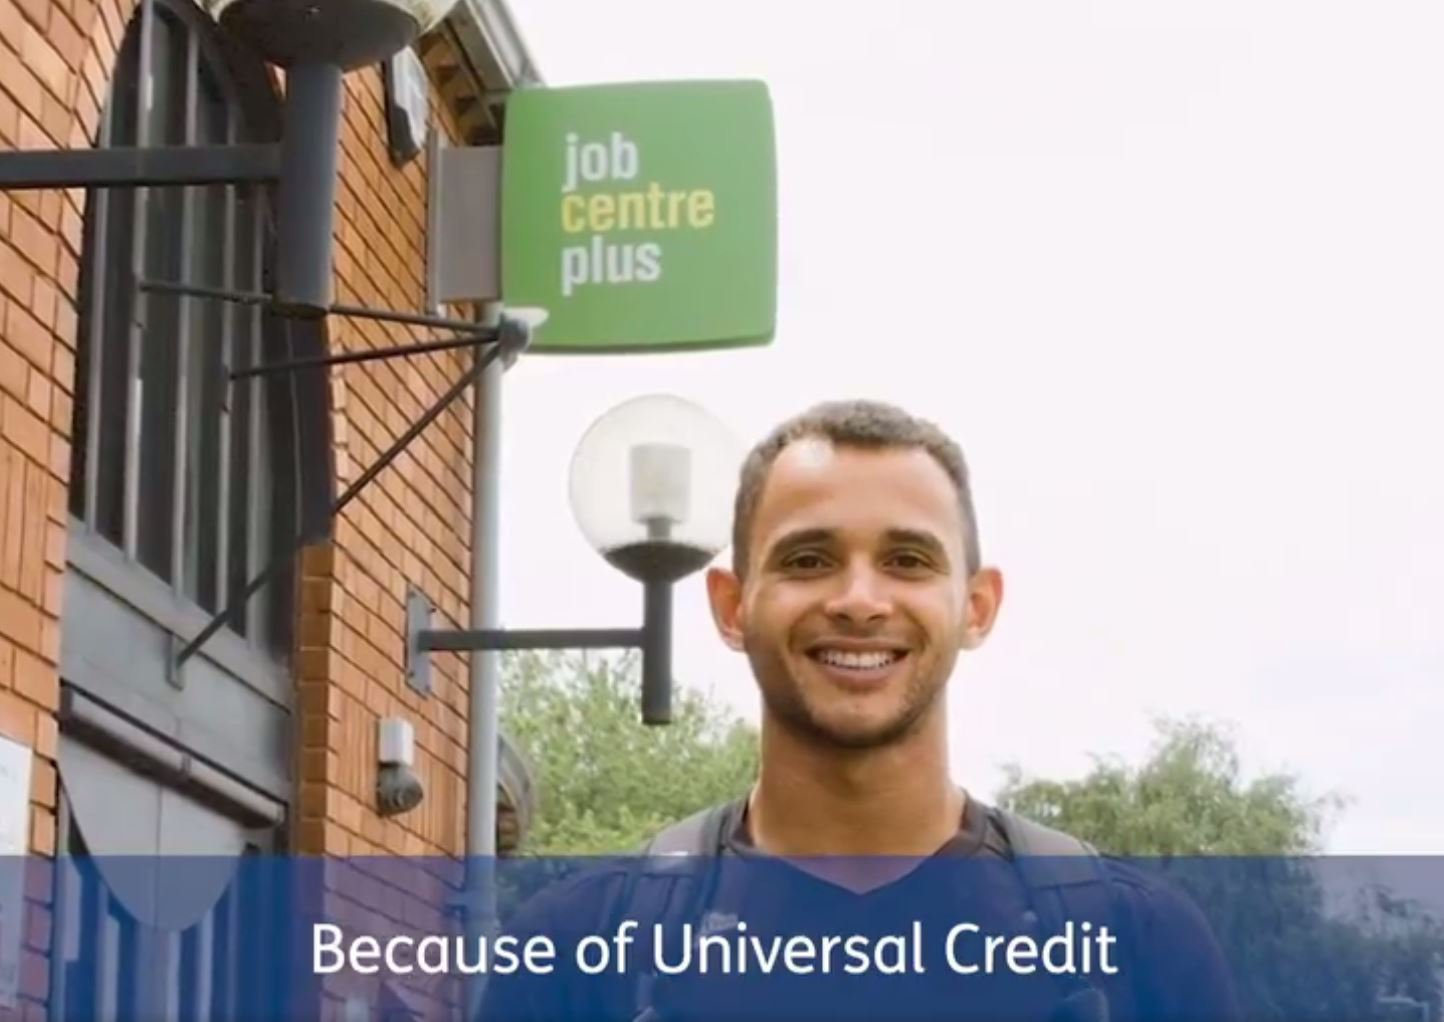 DWP 'didn't know' it used actor in Universal Credit promo video